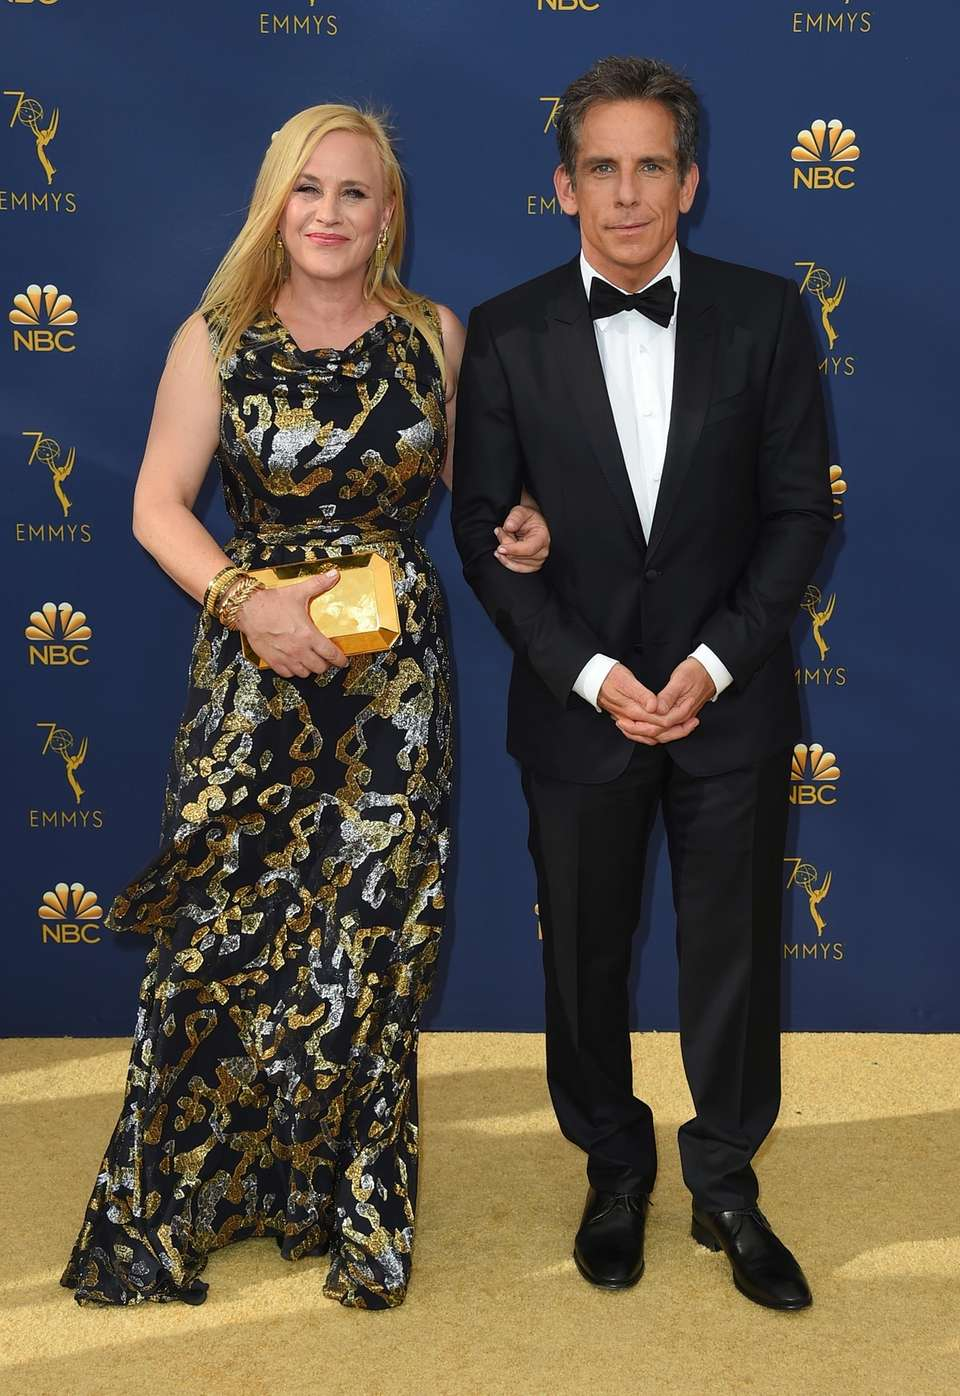 Patricia Arquette and Ben Stiller arrive for the